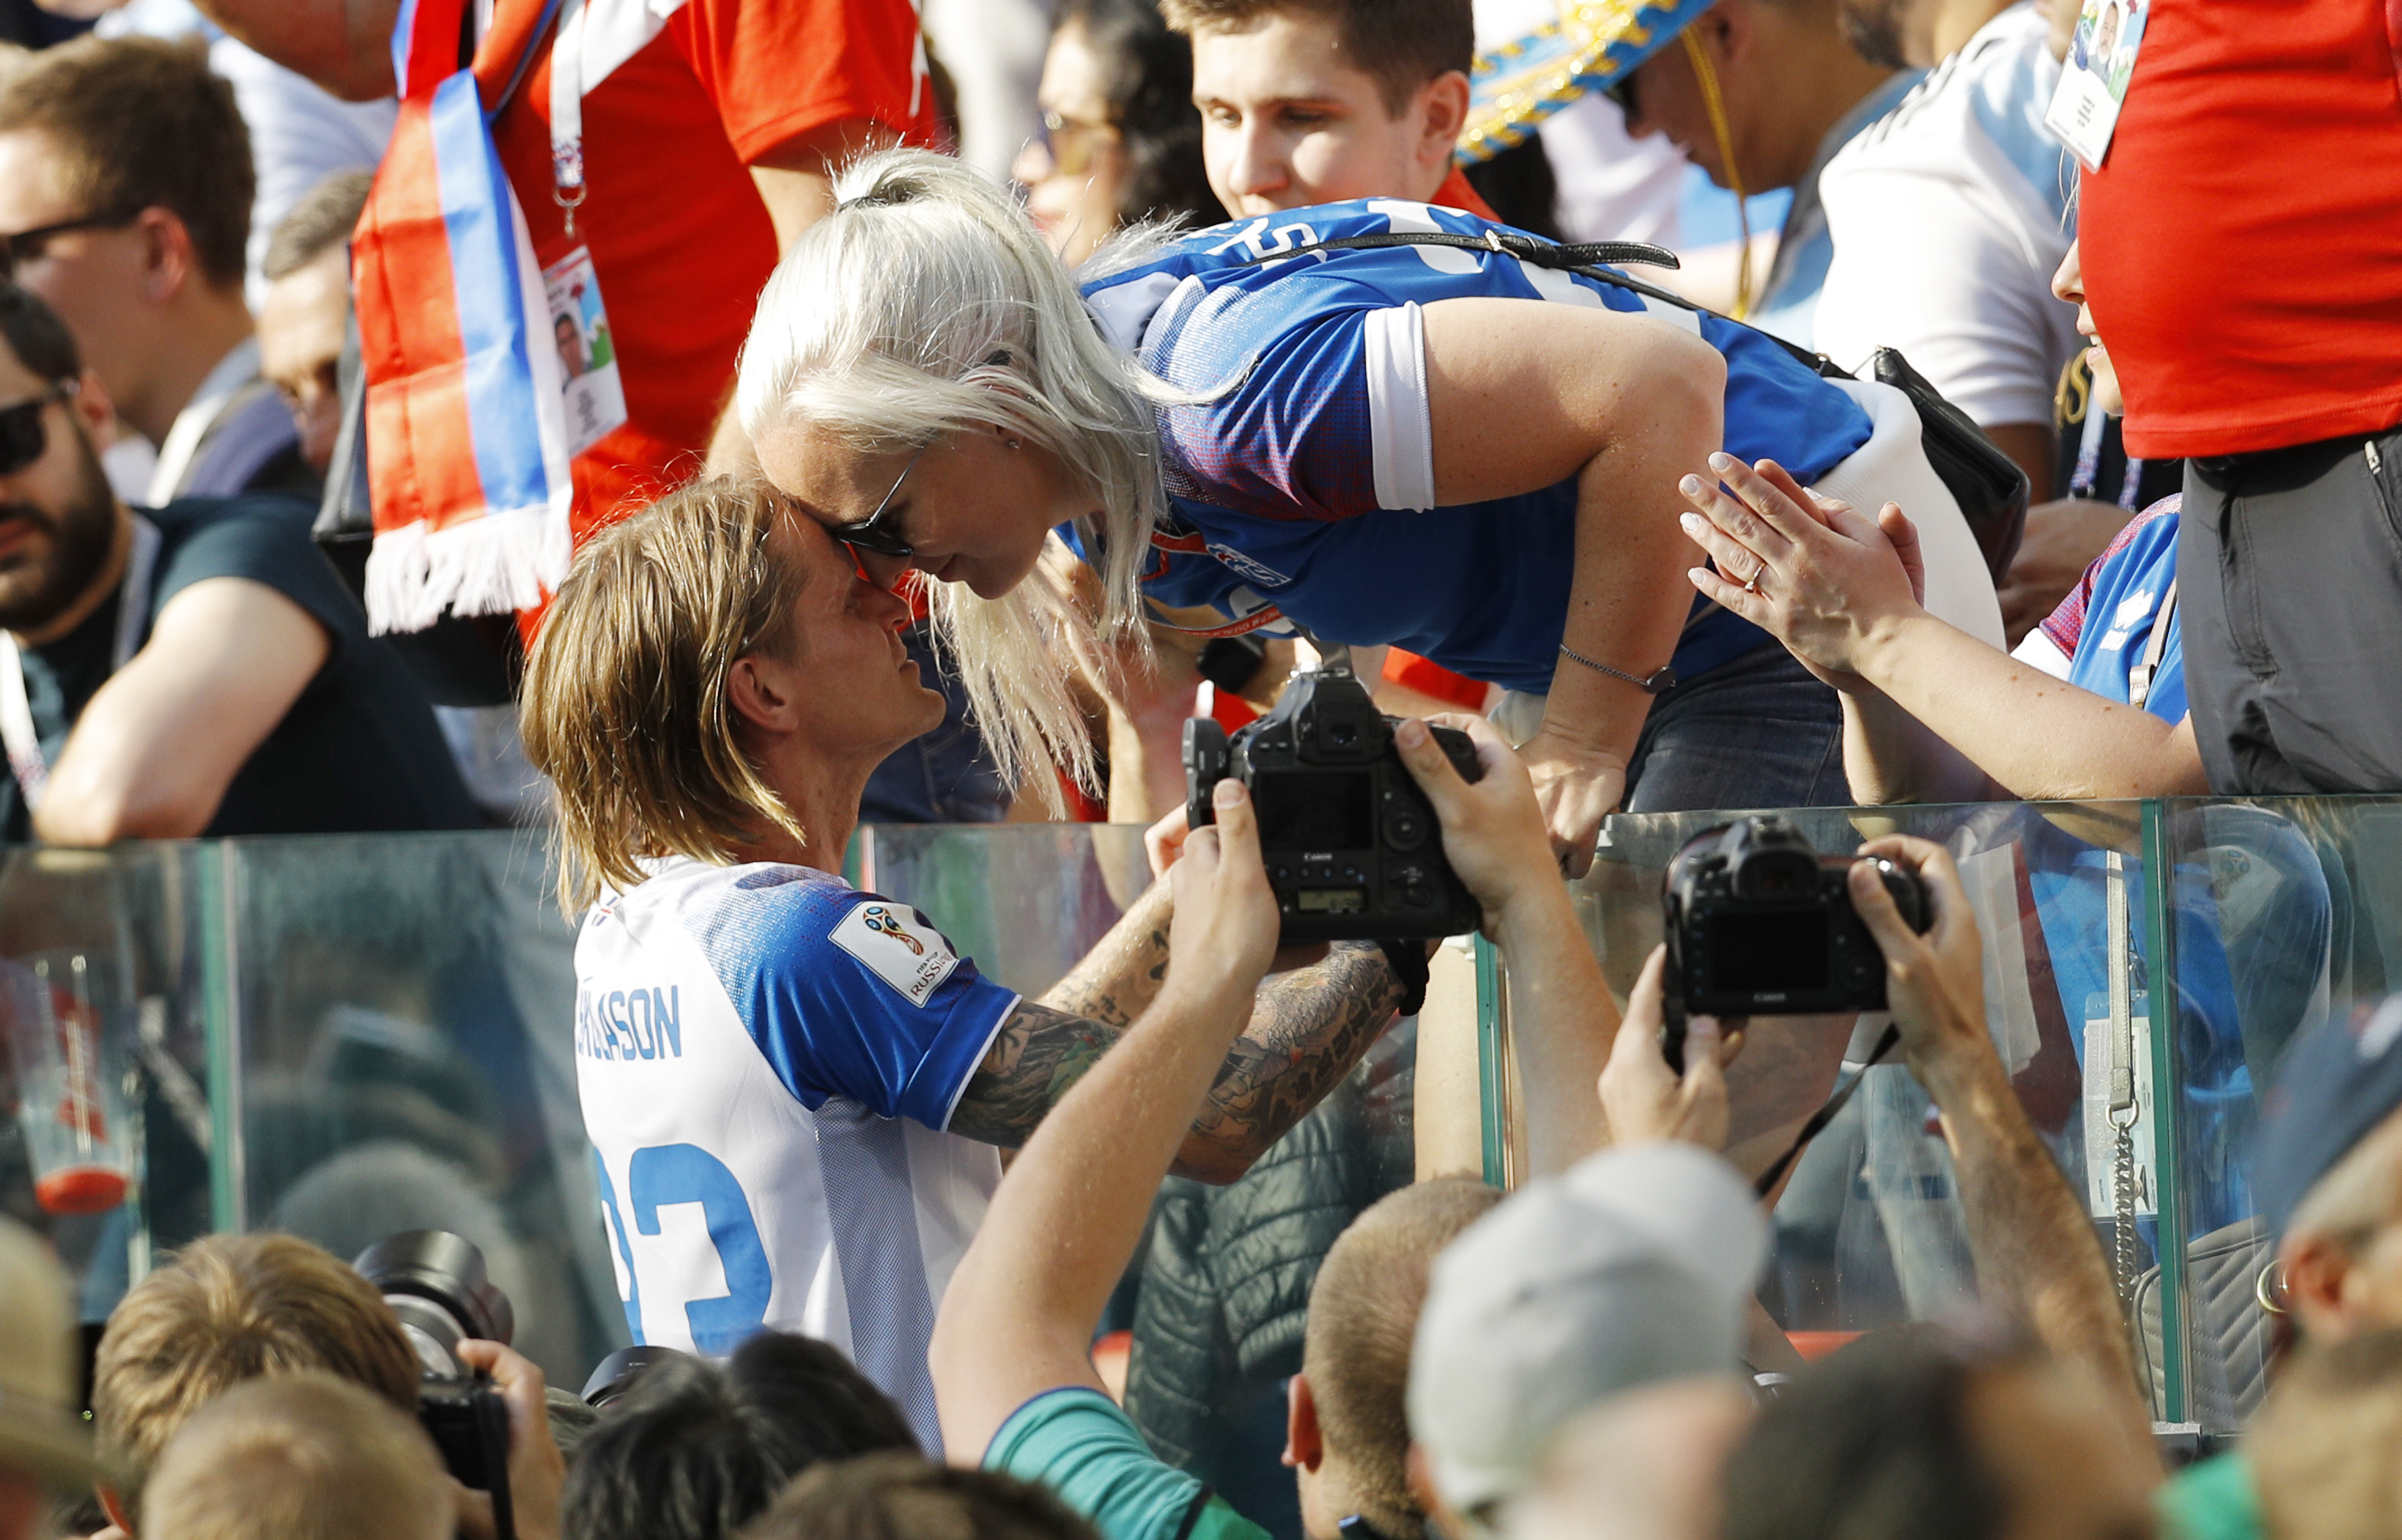 Iceland's Ari Skulason celebrates with a woman after a draw 1-1 in the group D match between Argentina and Iceland at the 2018 soccer World Cup in the Spartak Stadium in Moscow, Russia, June 16, 2018.